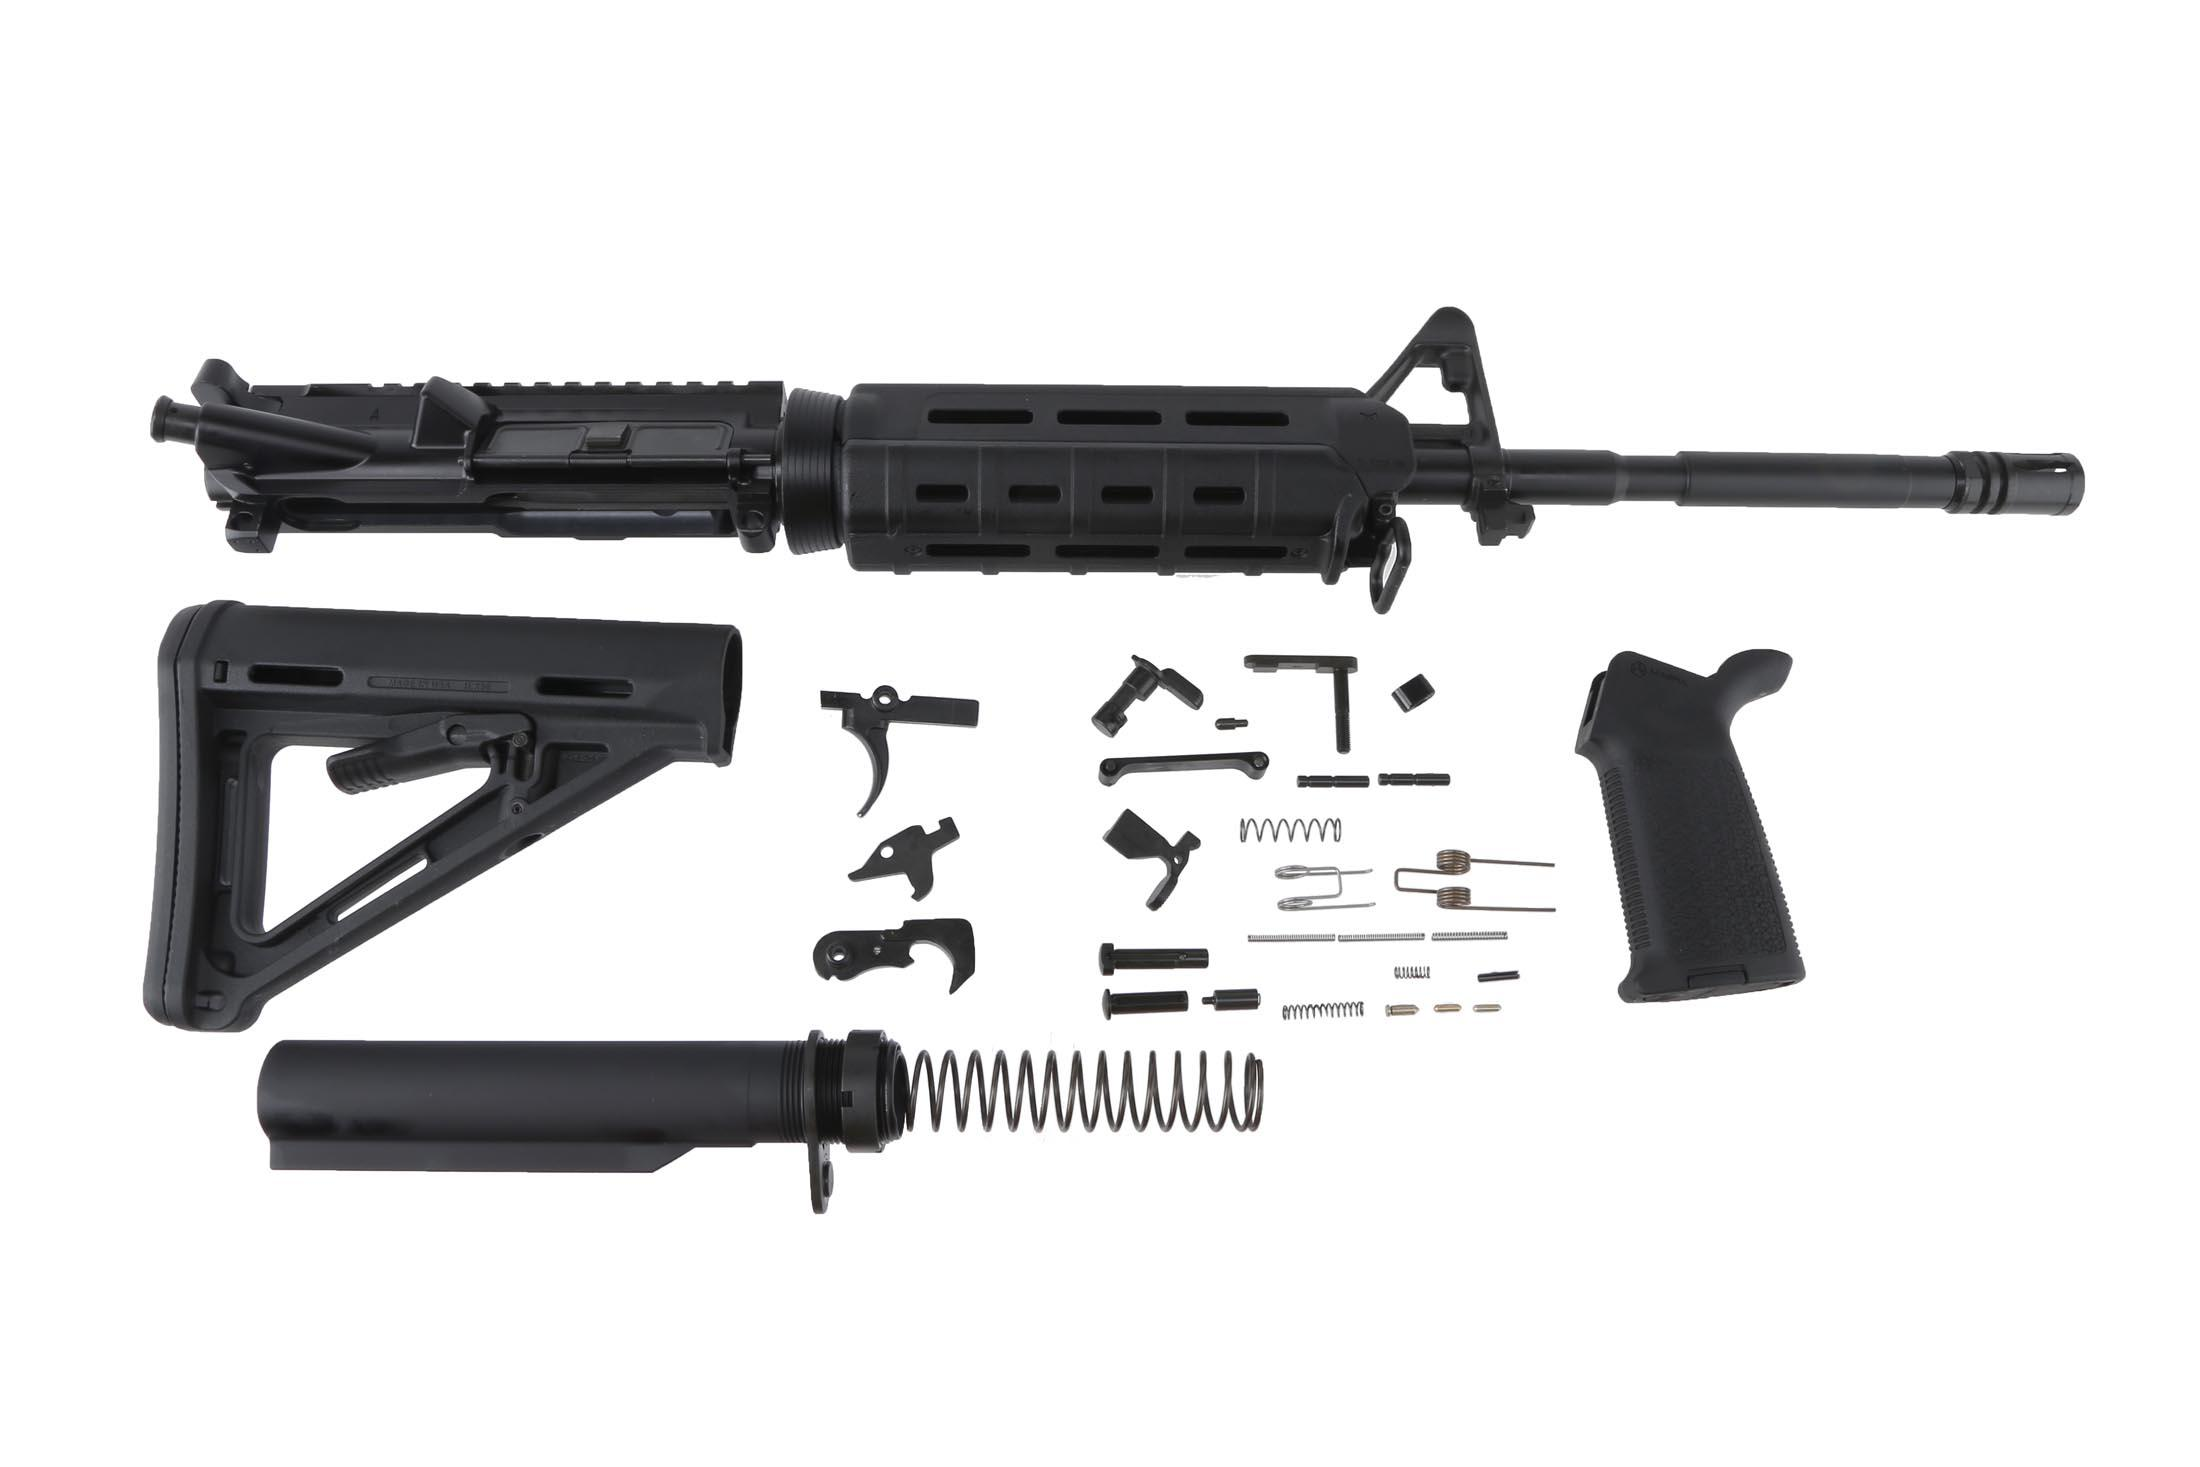 Del Ton 16 5 56 M4 Rifle Kit With Magpul Furniture And M Lok Handguard Black